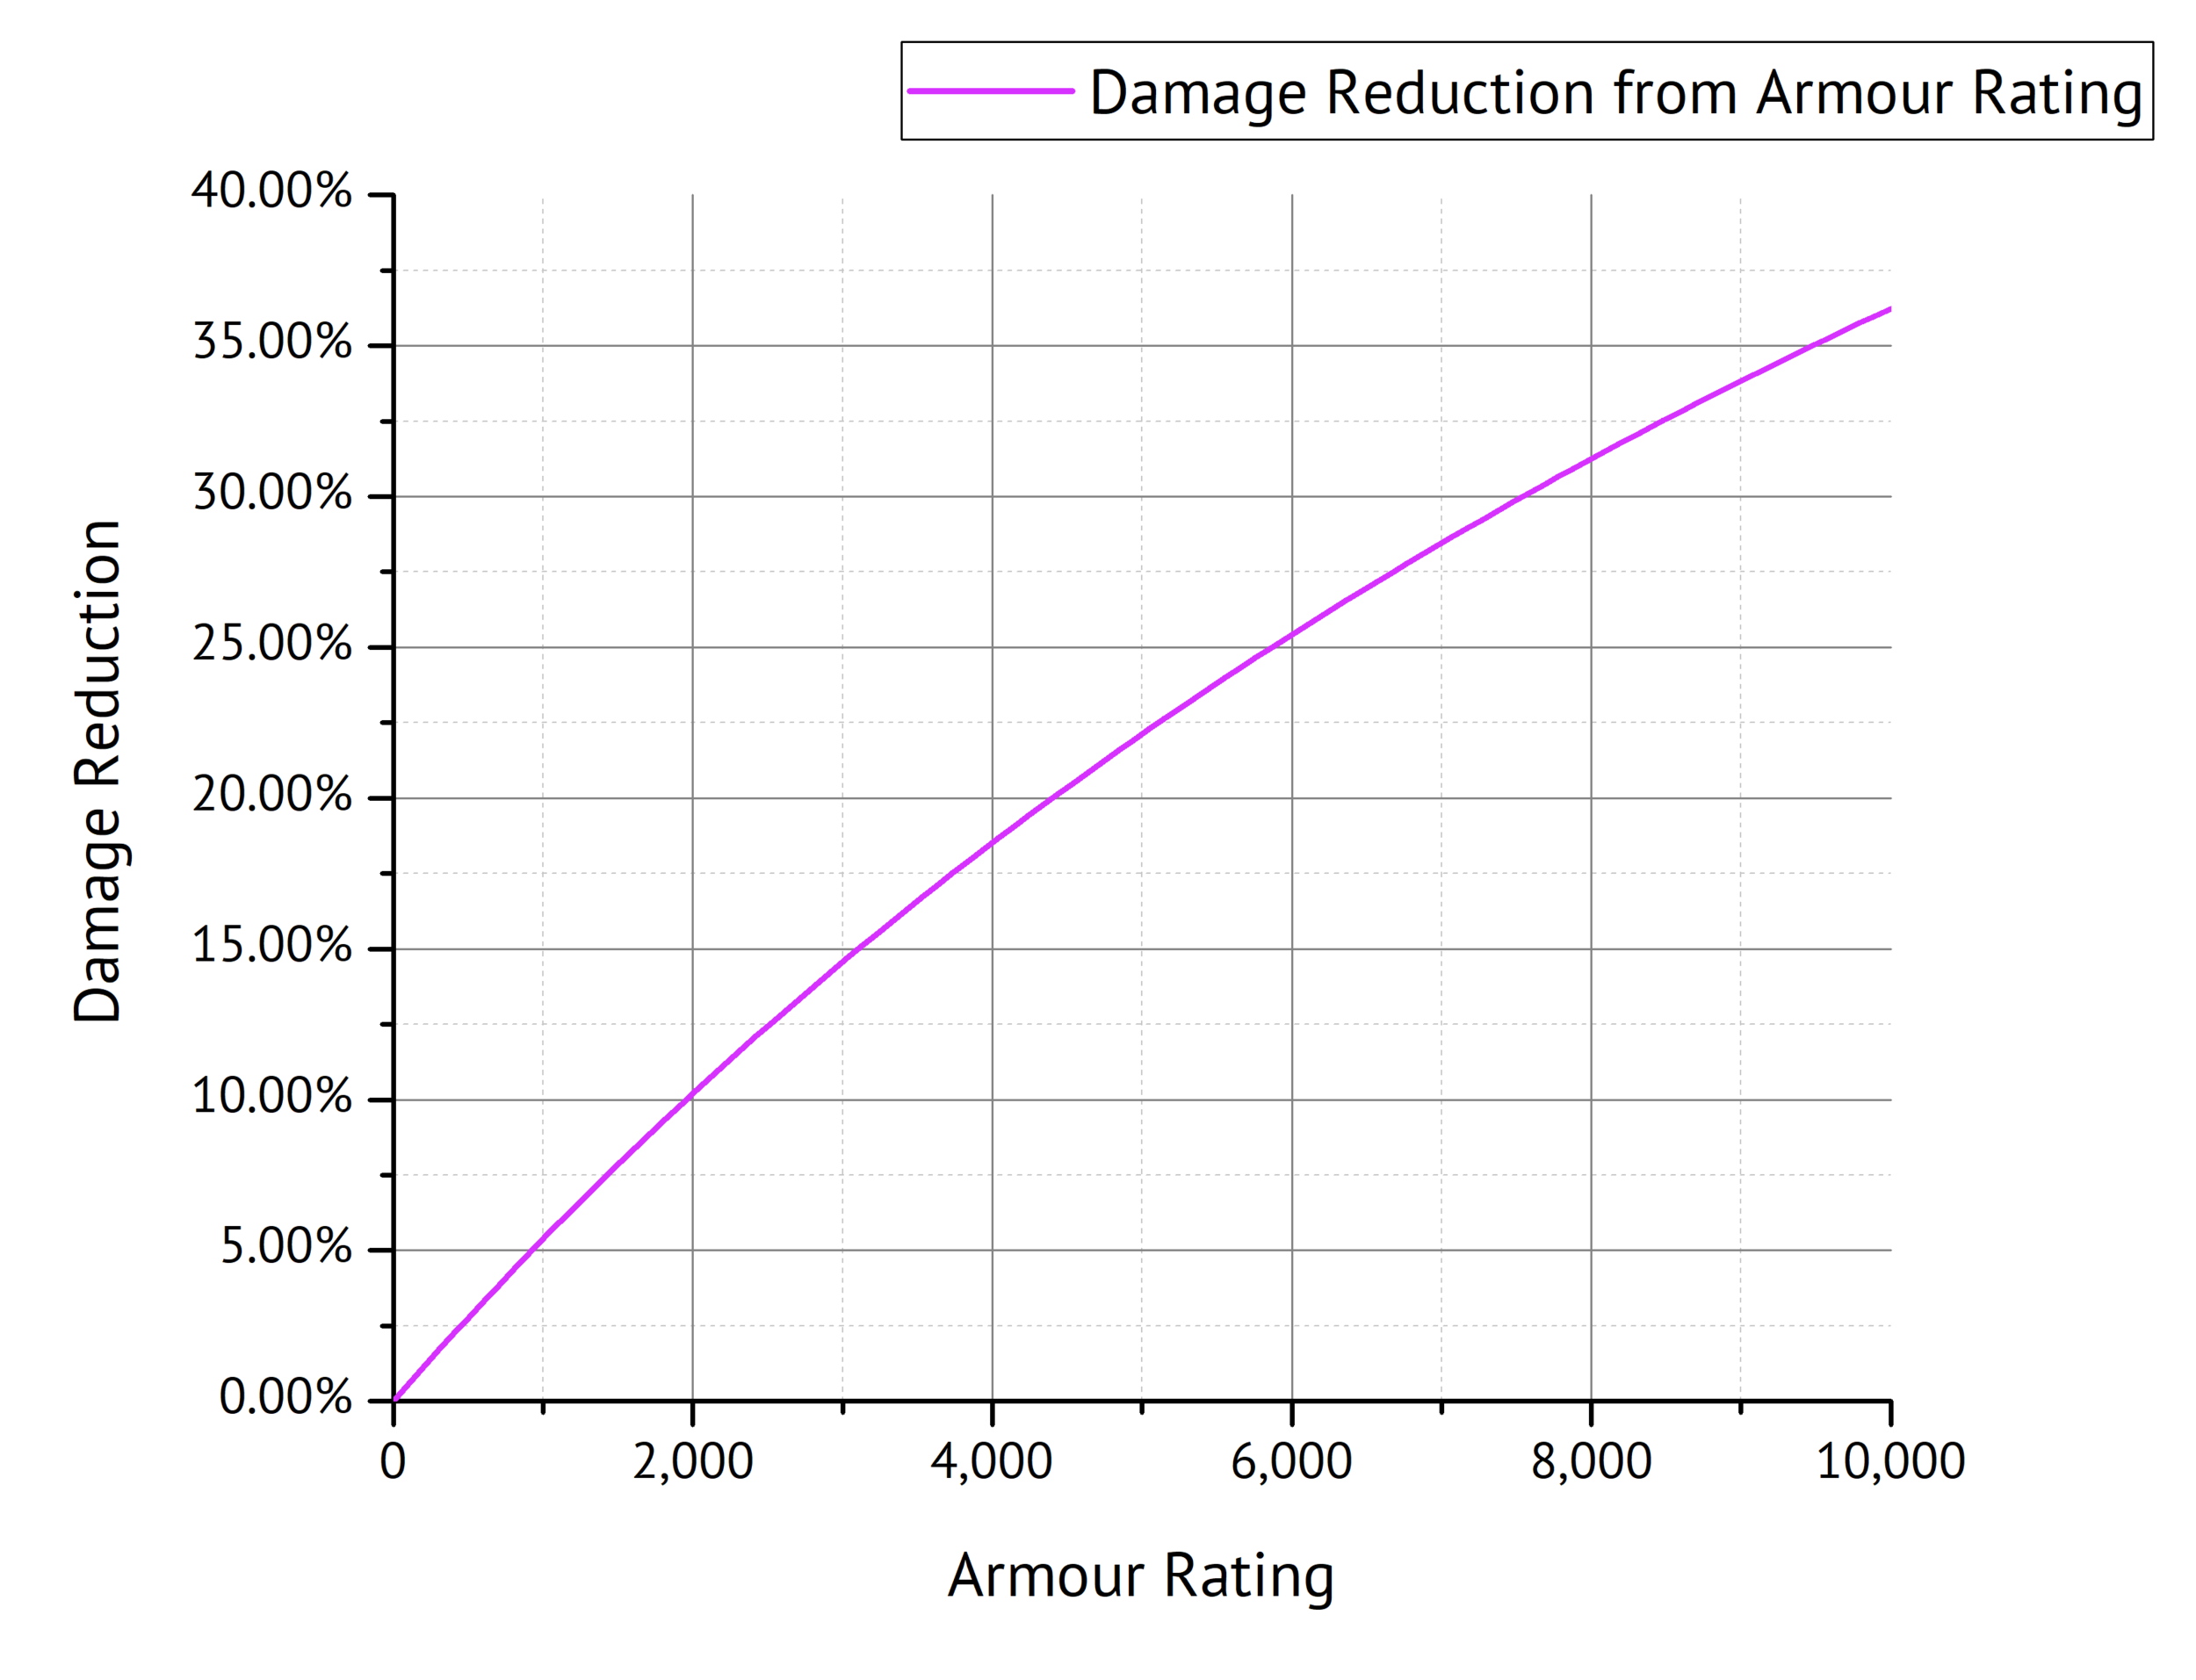 Fig. 13: Damage Reduction as a function of Armour Rating.